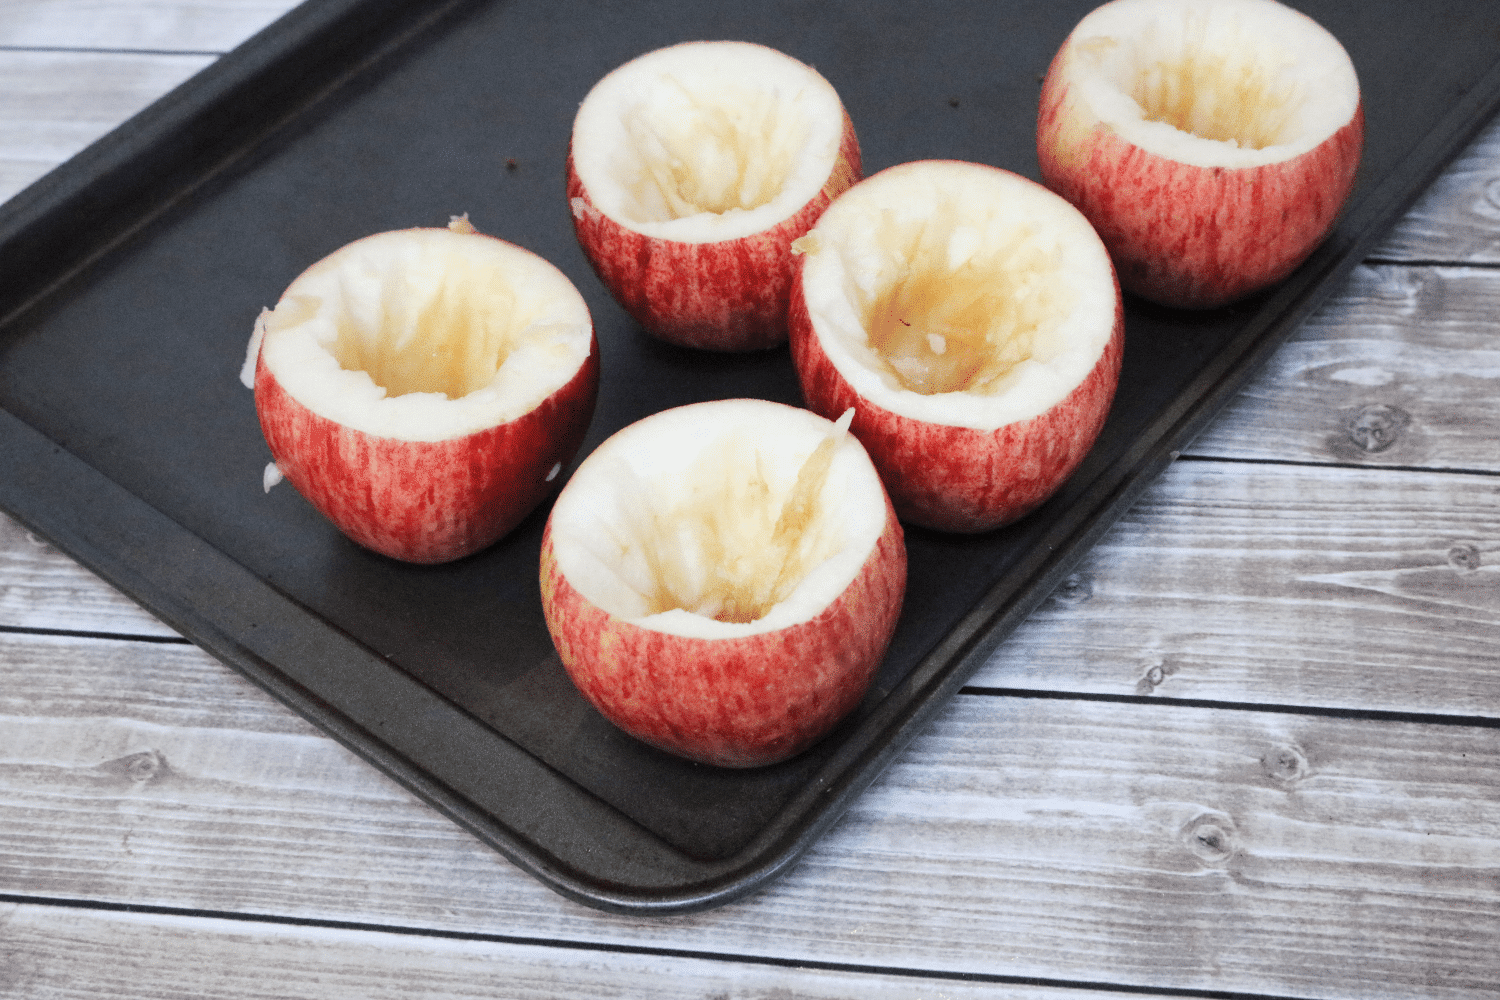 Apples that have been cored on a baking tray